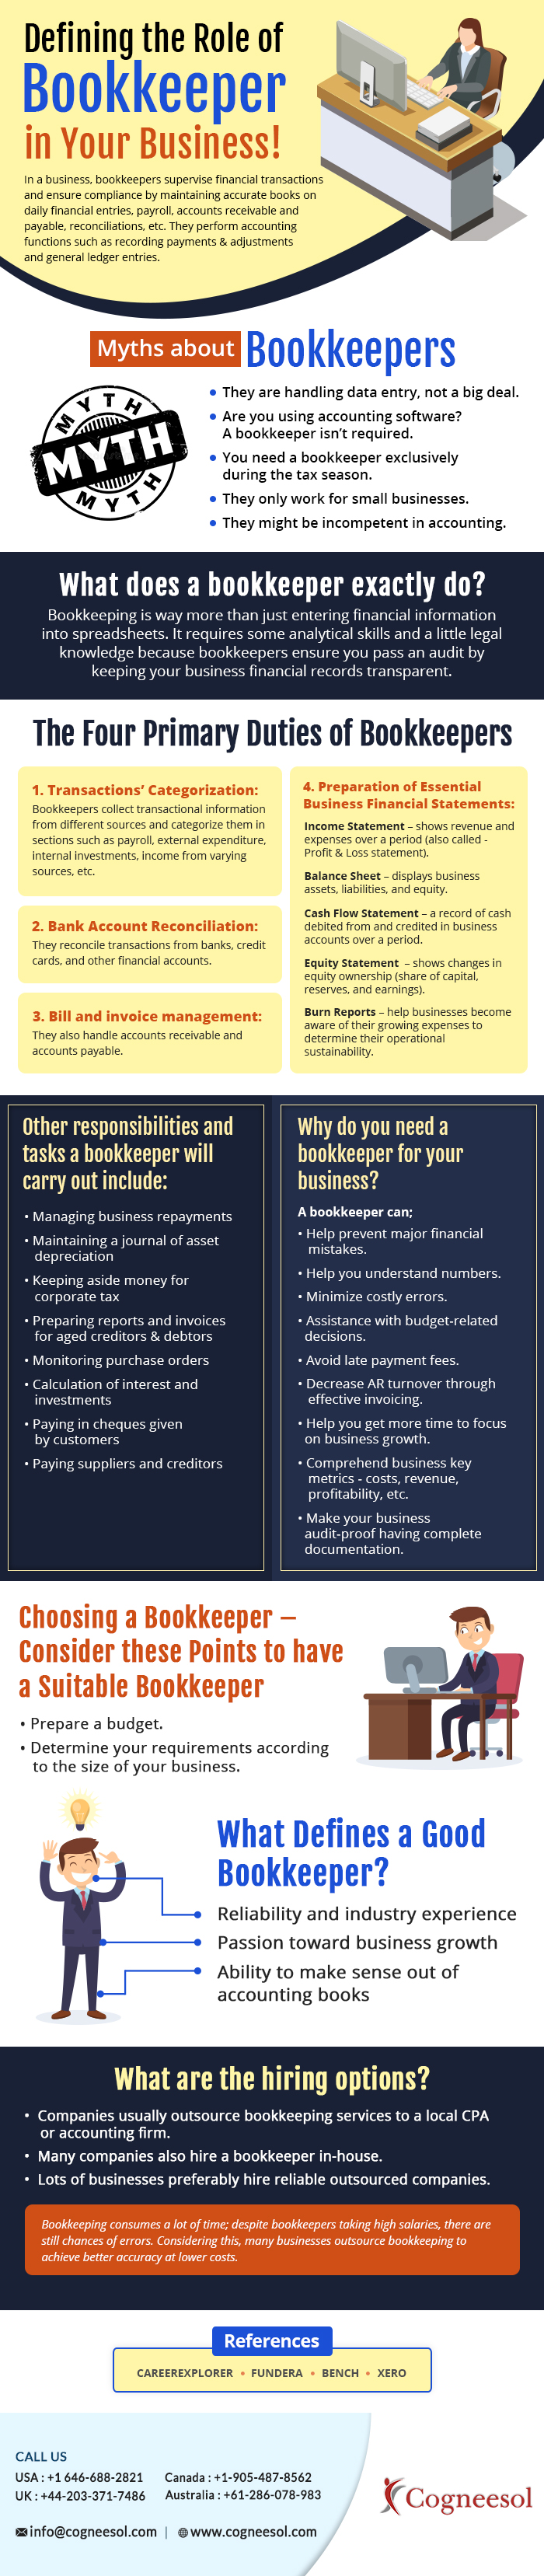 Defining the Role of Bookkeeper in Your Business! #infographic